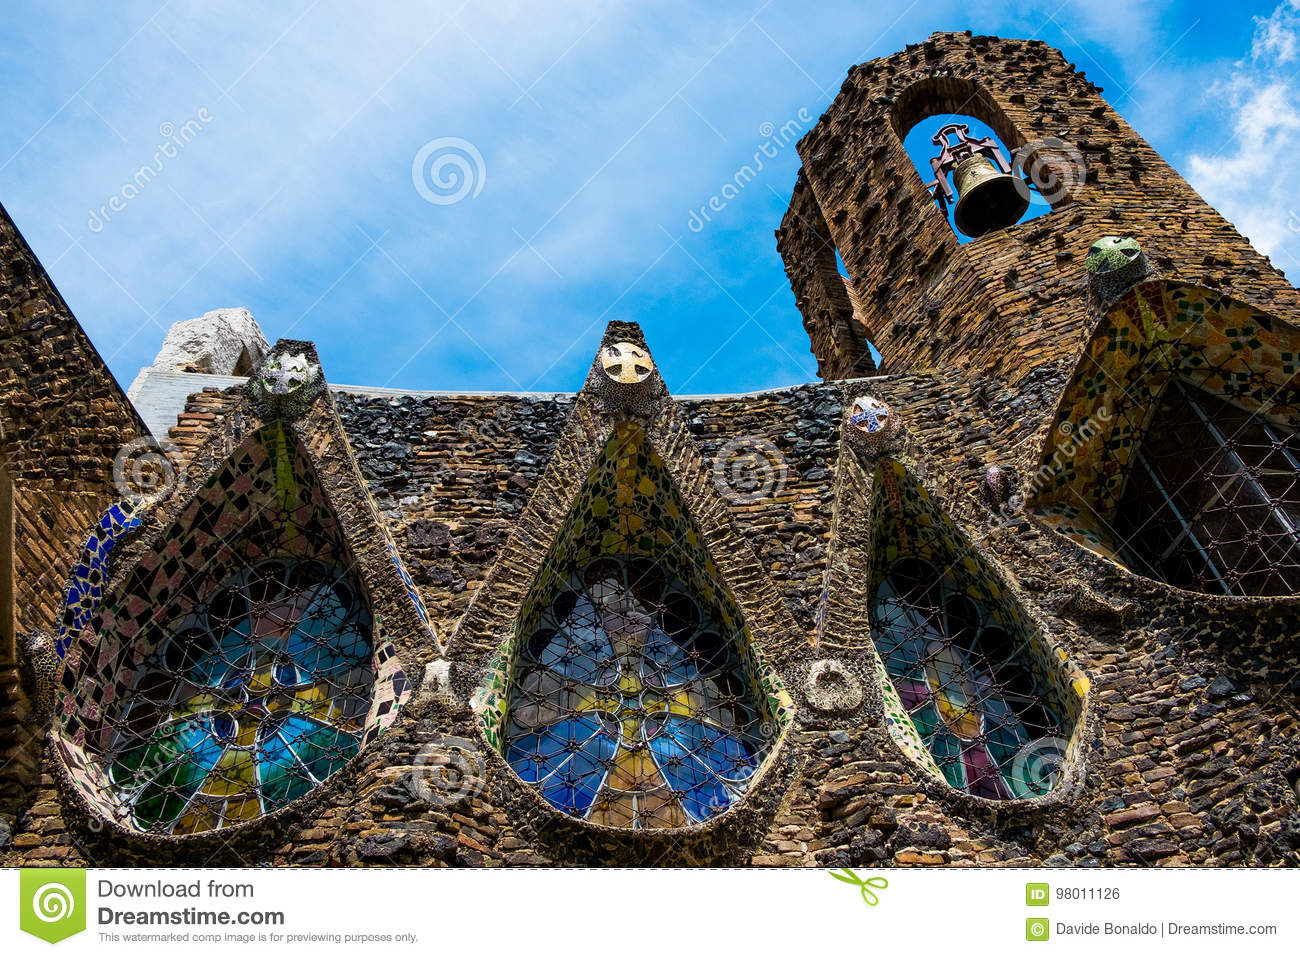 Closeup of gaudi colonia guell church in modernist style in sunny day